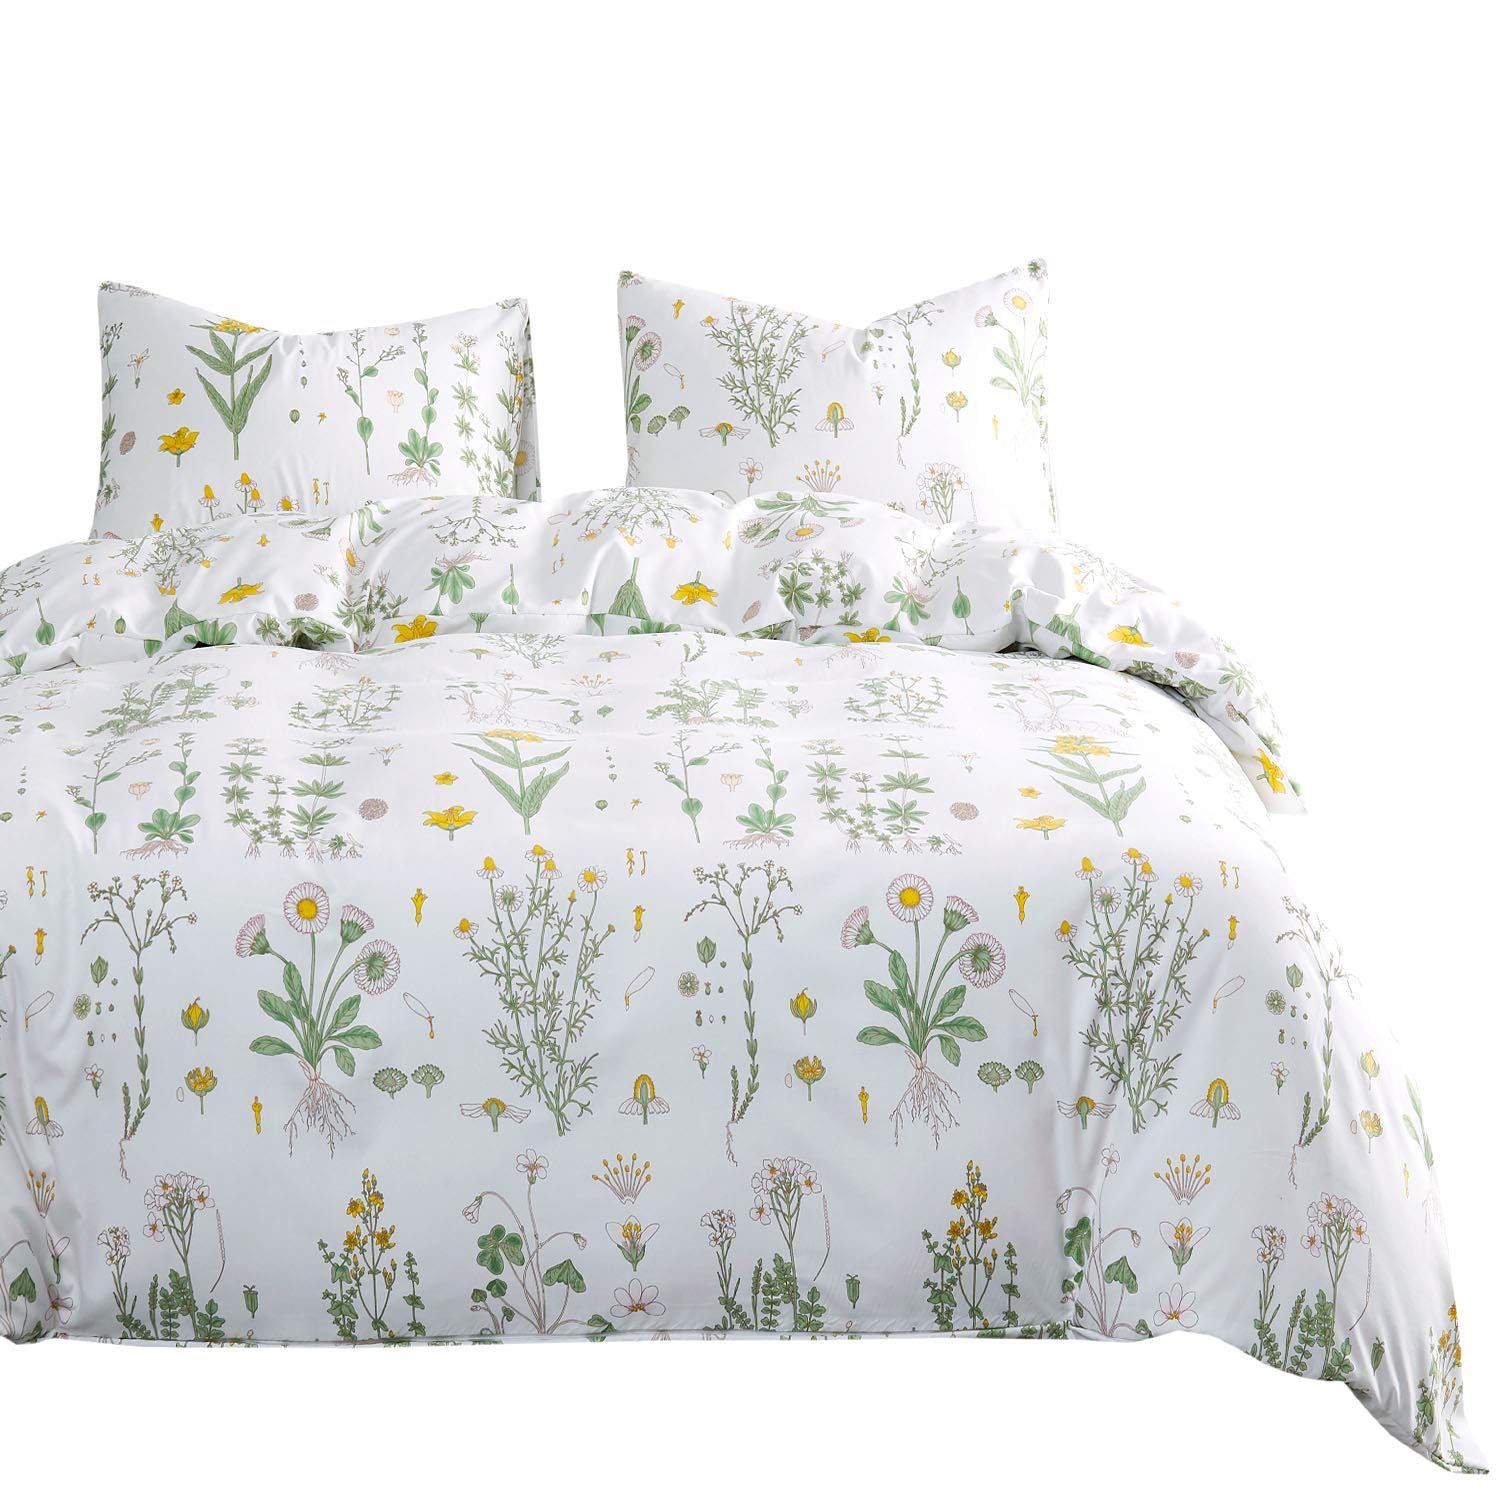 Wake In Cloud - Botanical Comforter Set, Yellow Flowers and Green Leaves Floral Garden Pattern Printed on White, Soft Microfiber Bedding (3pcs, Queen Size)